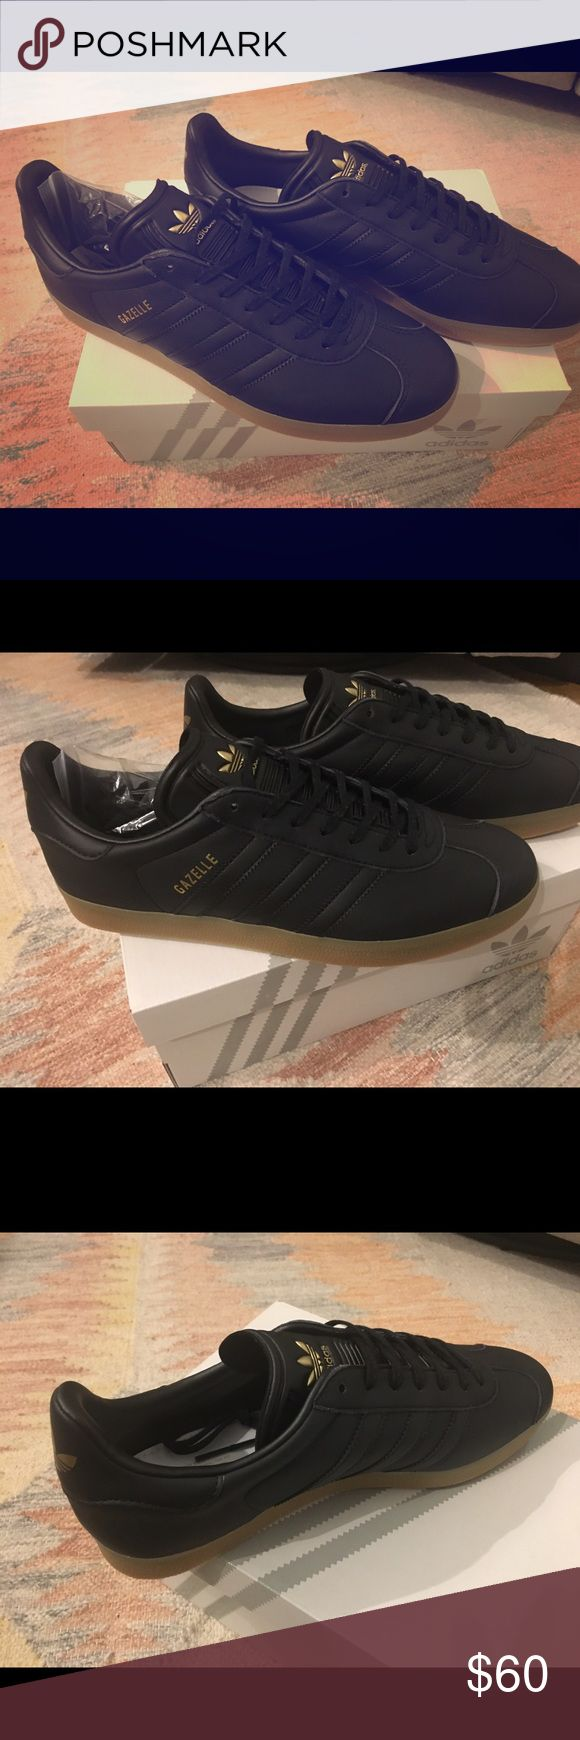 Adidas Men's Gazelles black leather new with box Adidas Black leather Gazelles with gum midsole. Gold trefoil, new and never worn. Comes with box, men's size 10 adidas Shoes Sneakers